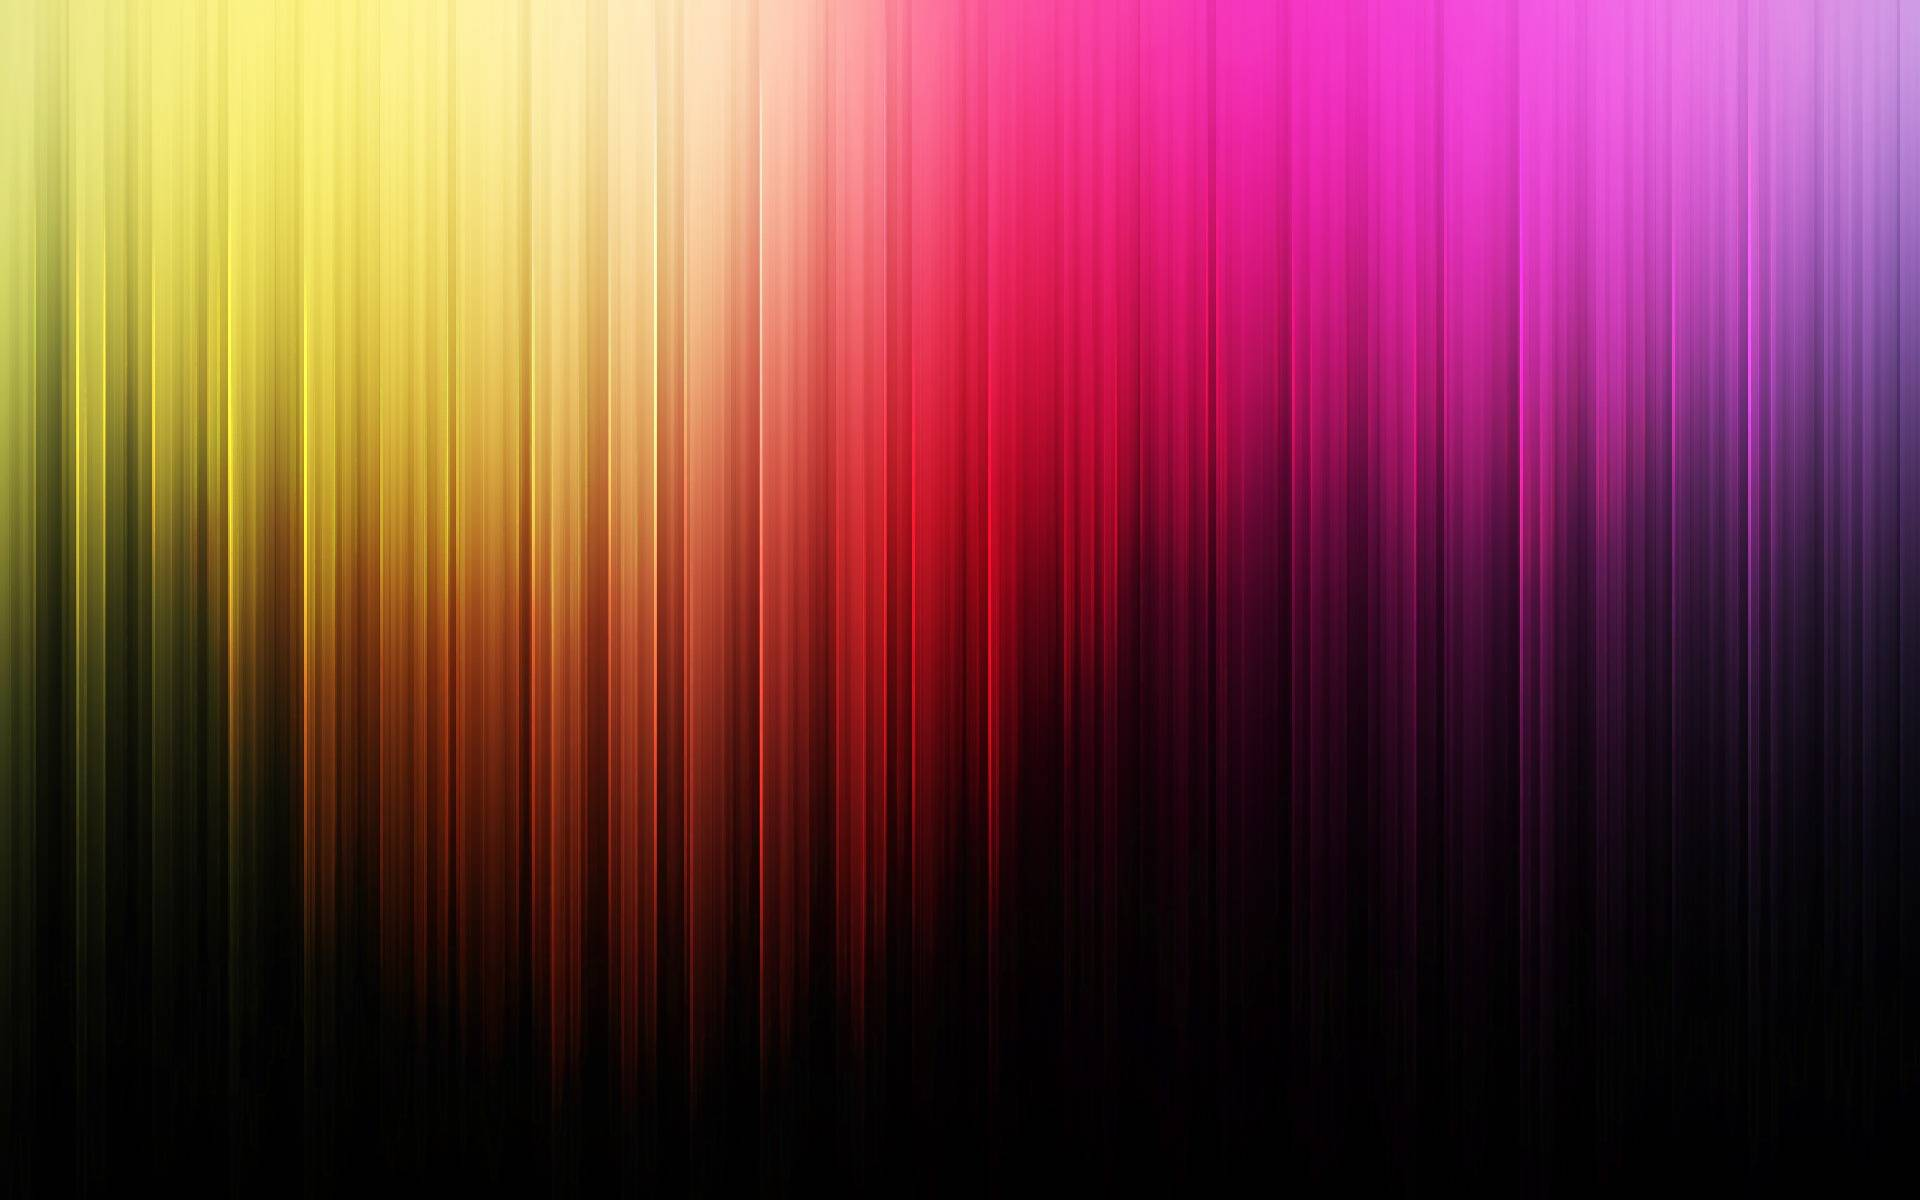 Colorwash hd wallpaper background image 1920x1200 id - Faded wallpaper ...